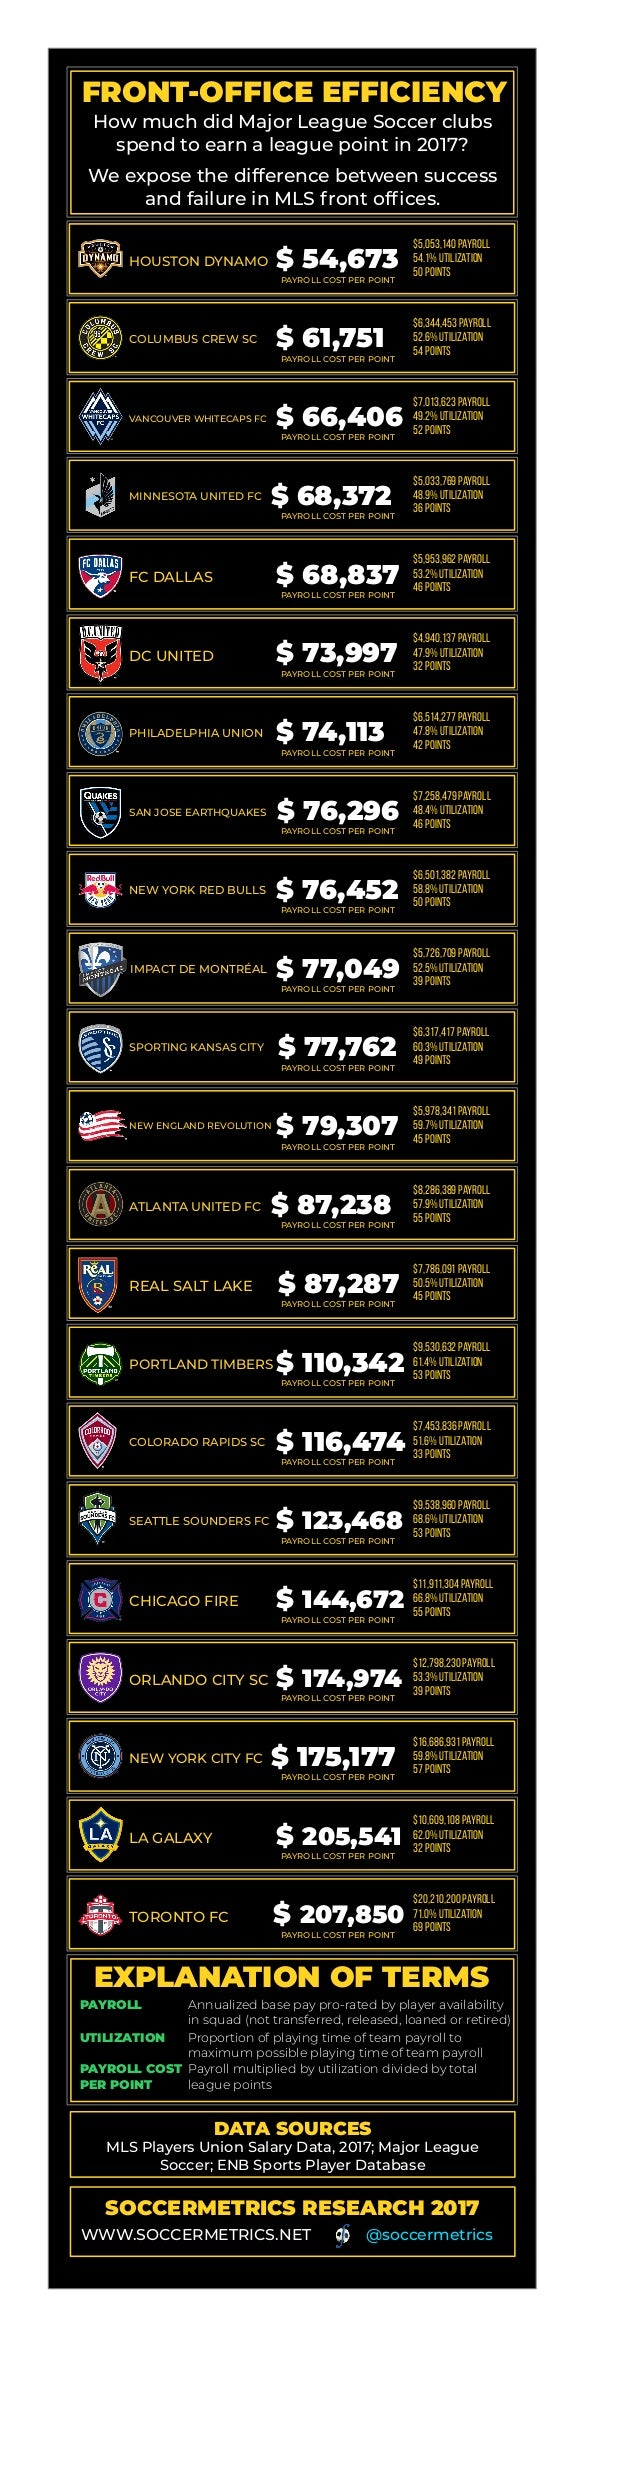 FRONT-OFFICE EFFICIENCY How much did Major League Soccer clubs spend to earn a league point in 2017? We expose the differe...